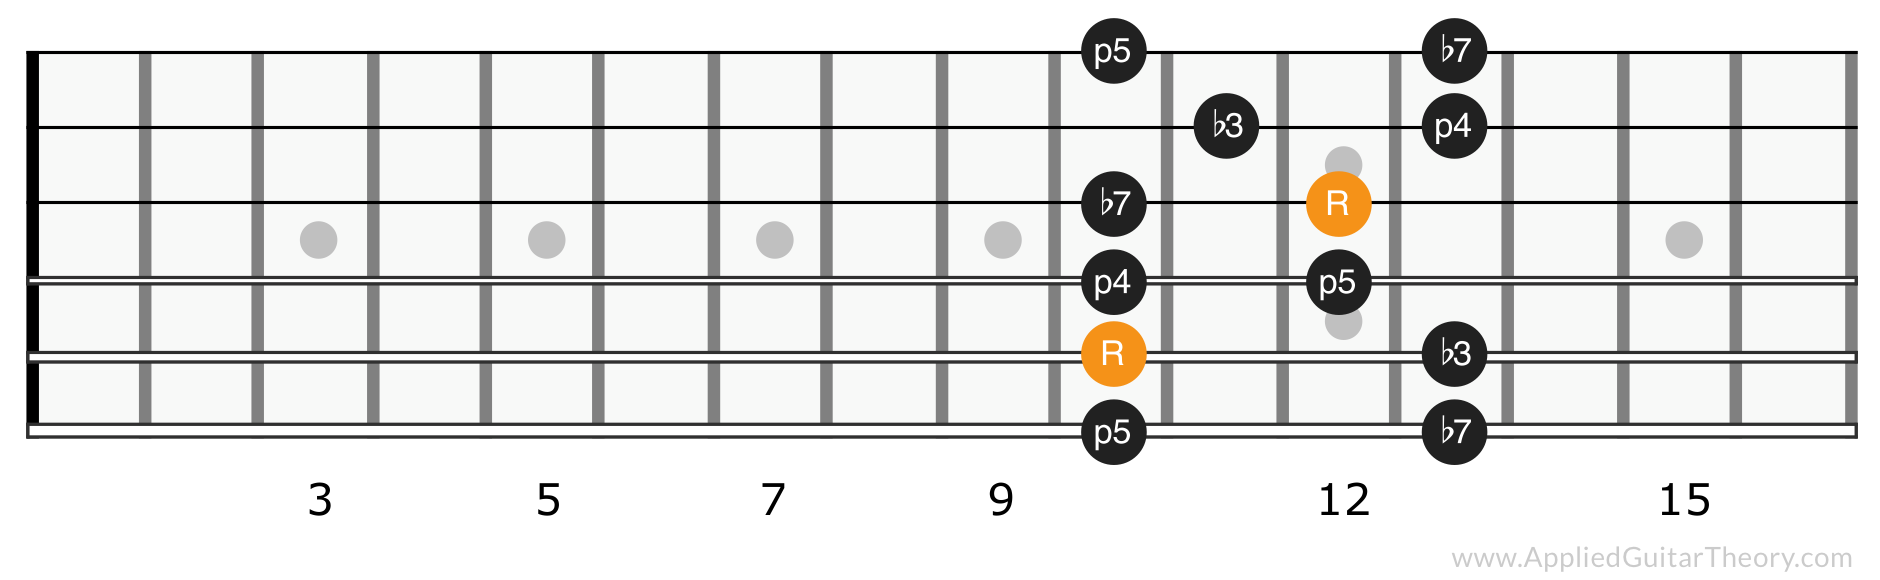 Minor pentatonic scale position 4